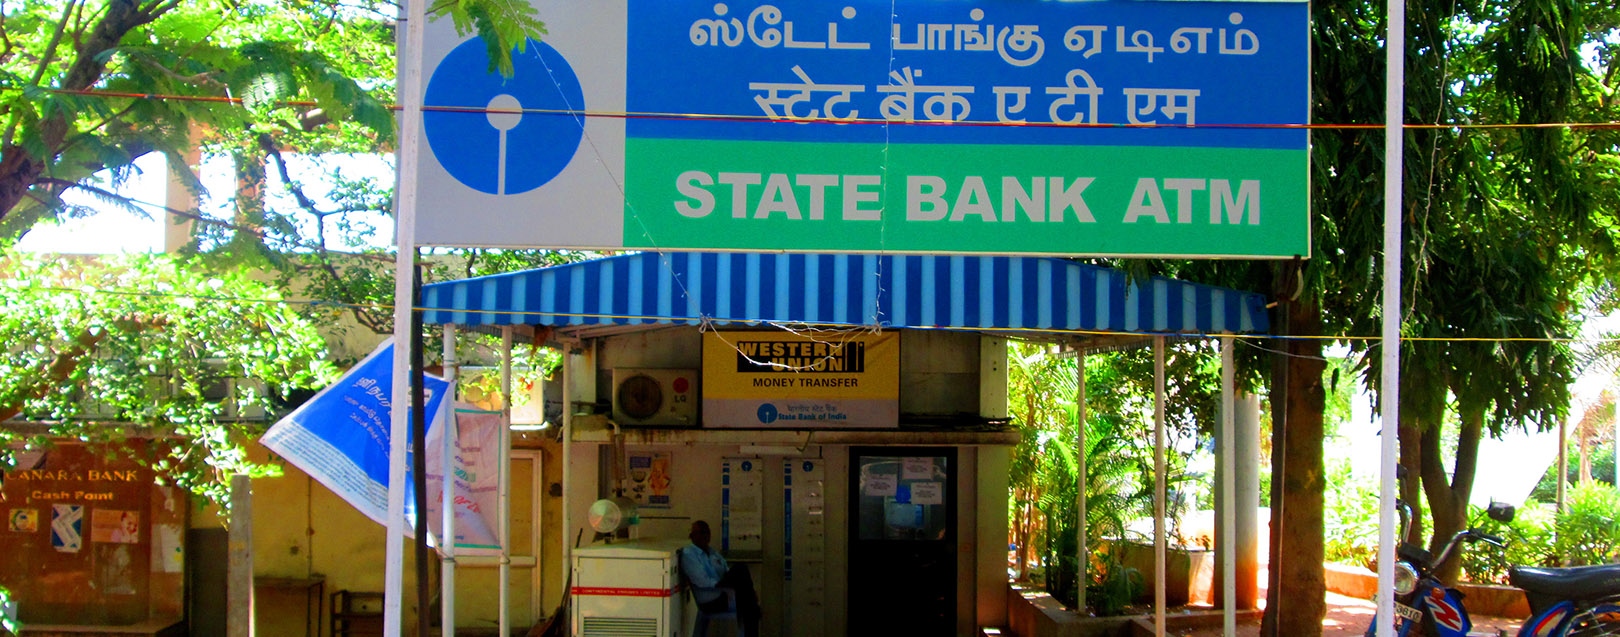 6 lakh SBI debit cards recalled; HDFC, Axis, ICICI, Yes Bank cards also compromised